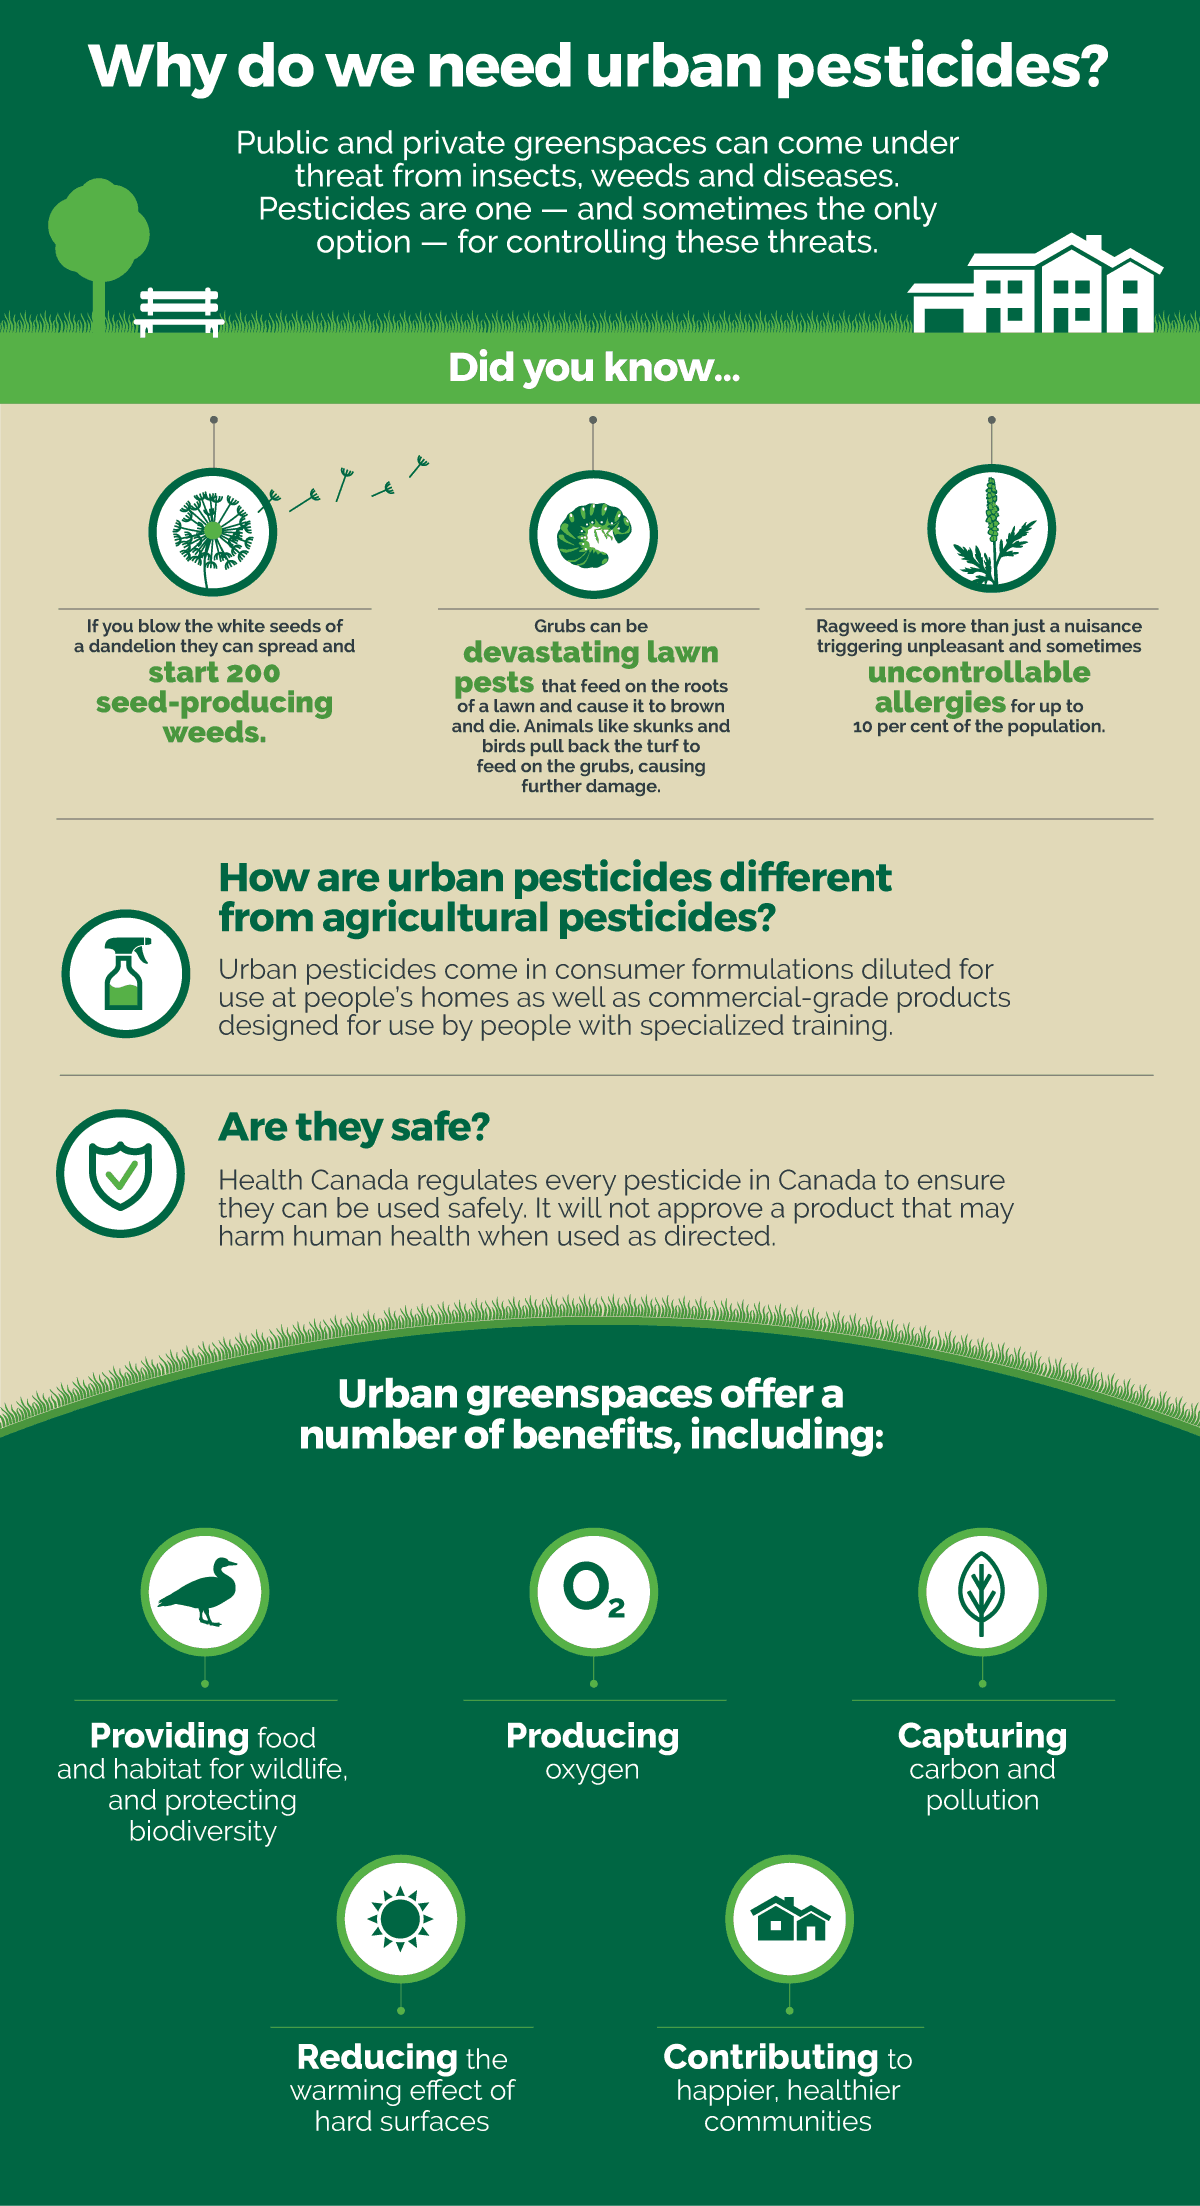 Why do we need urban pesticides?